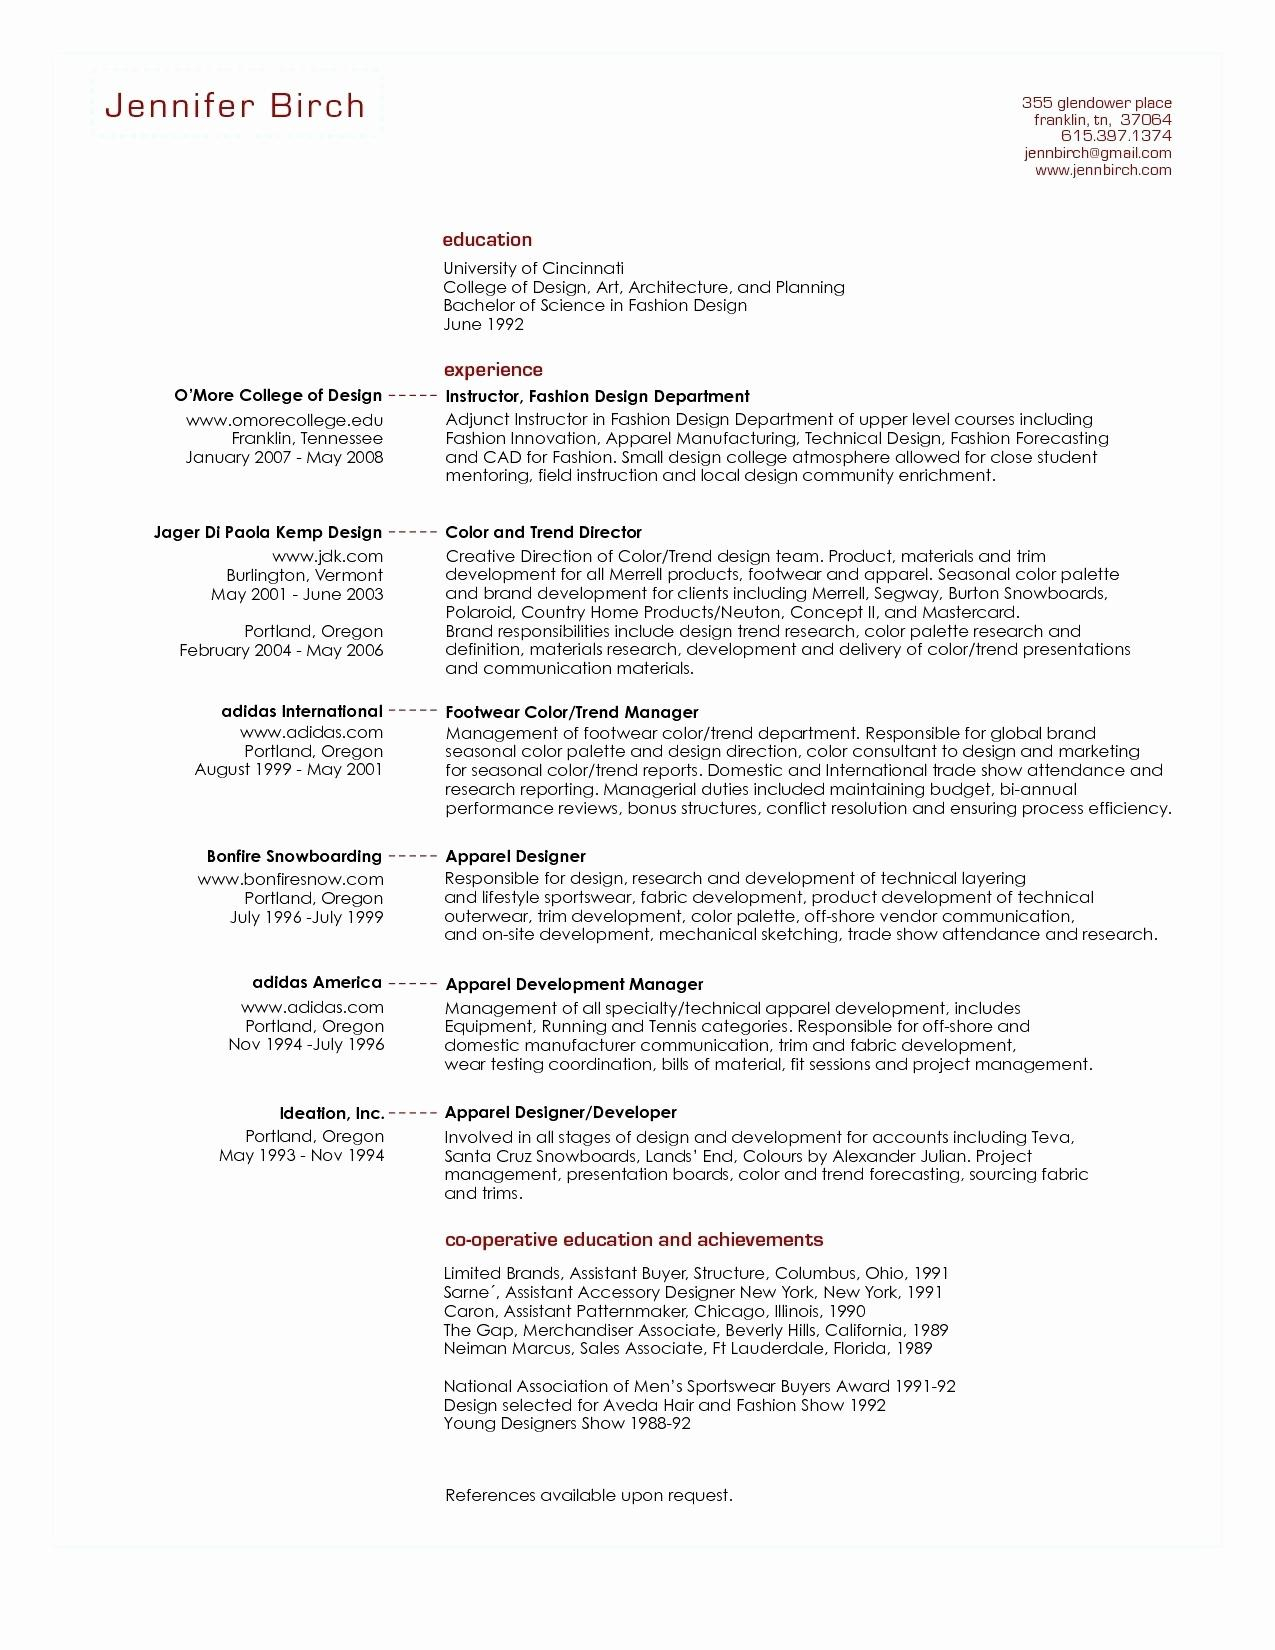 bba resume template example-Resume format for Bba Graduates Luxury Law Student Resume Template Best Resume Examples 0d 3-o